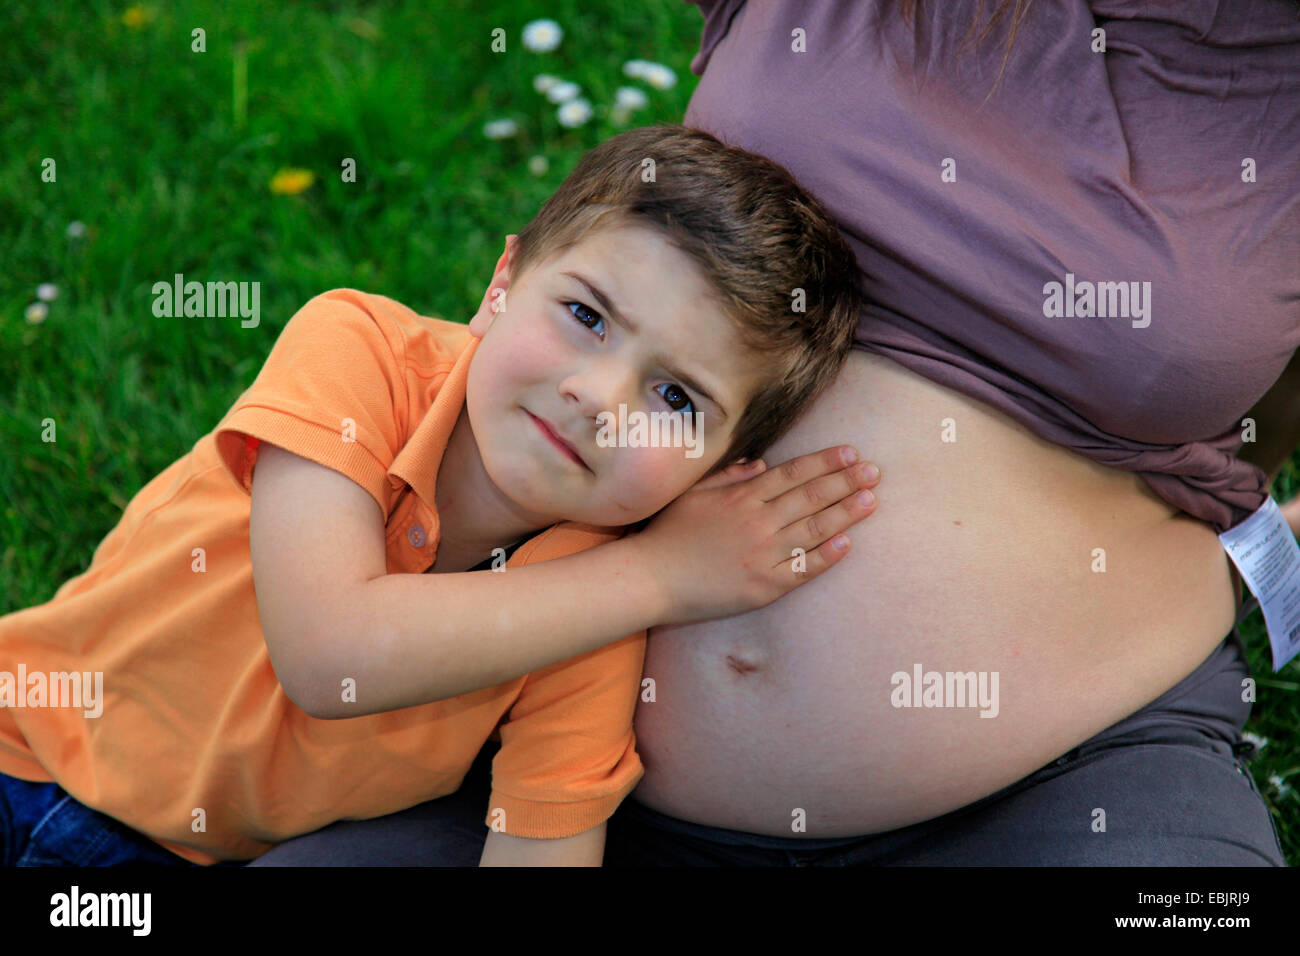 little boy leaning against the belly bump of his mother - Stock Image